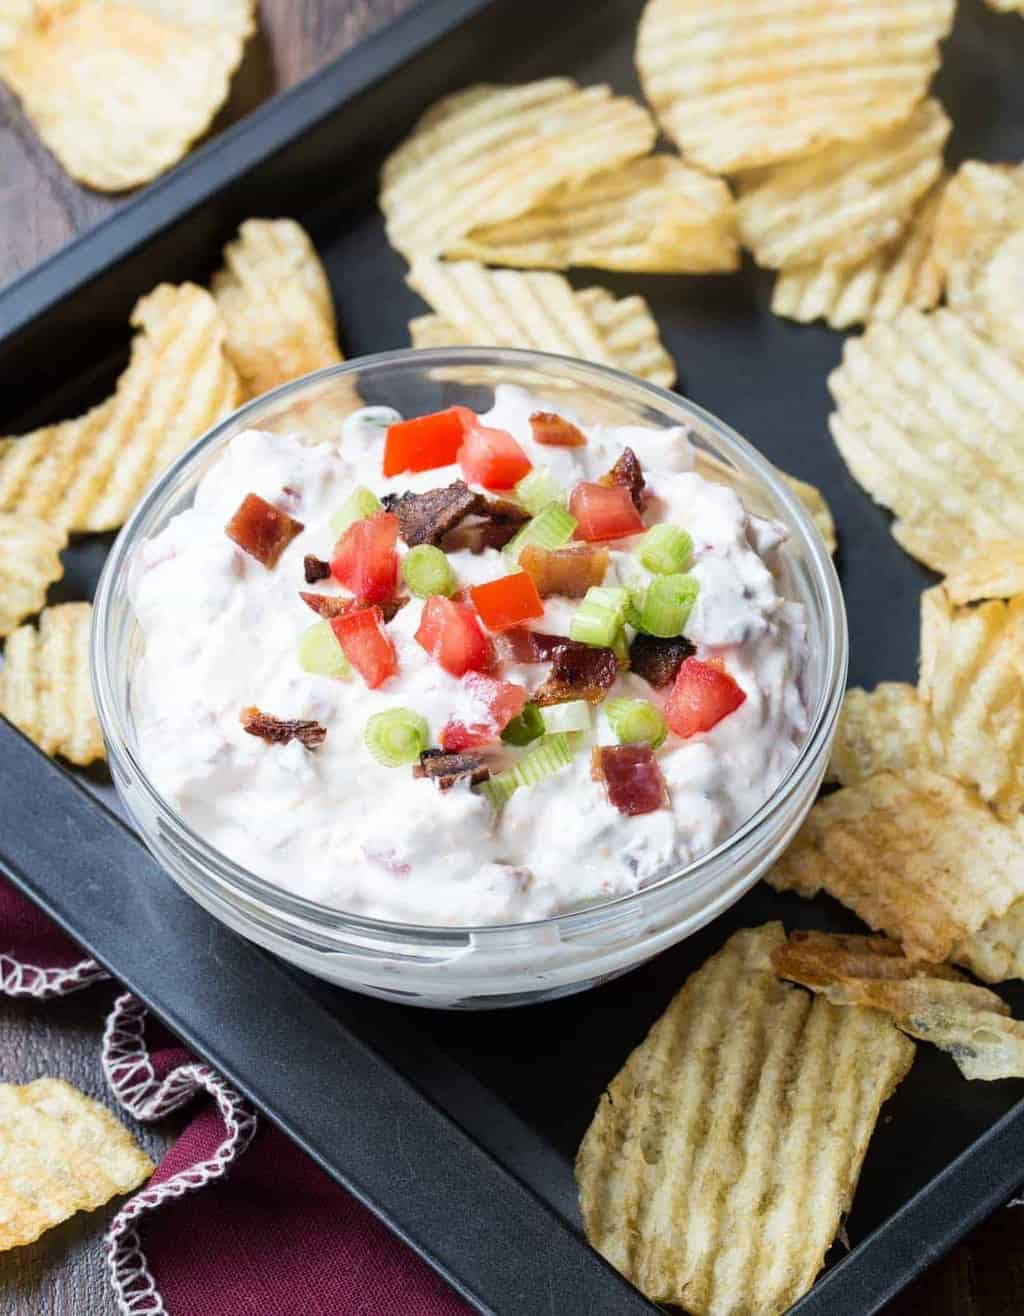 Small bowl of tomato bacon dip garnished with chopped tomato, bacon and green onions sitting on tray with potato chips scattered around.